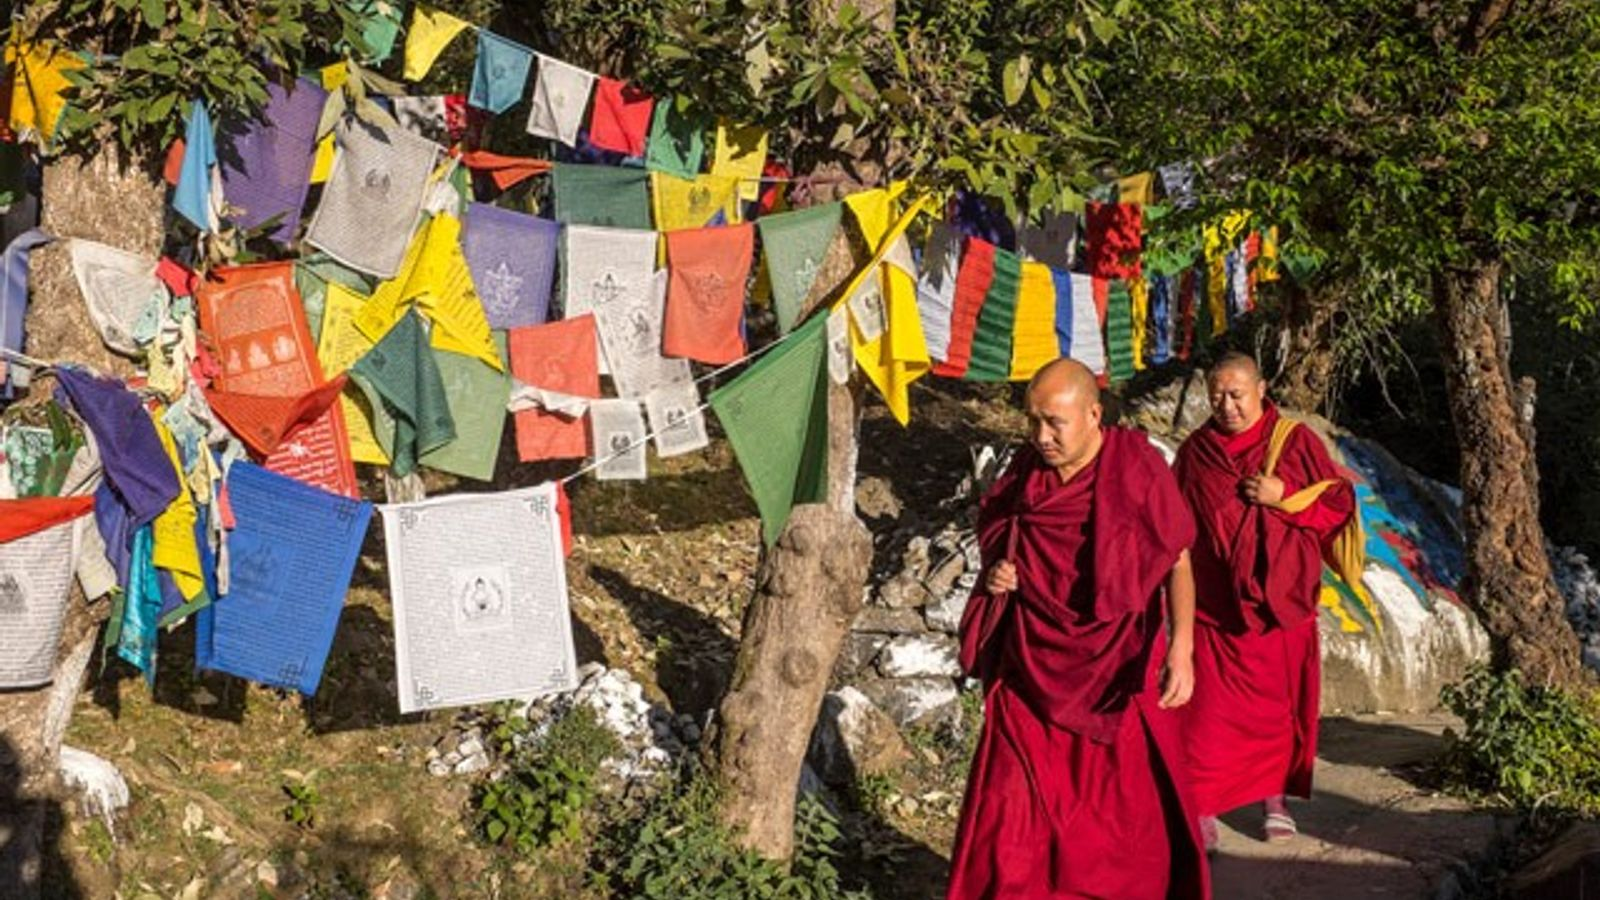 Buddhist monks at the Dalai Lama's residence in McLeod, India